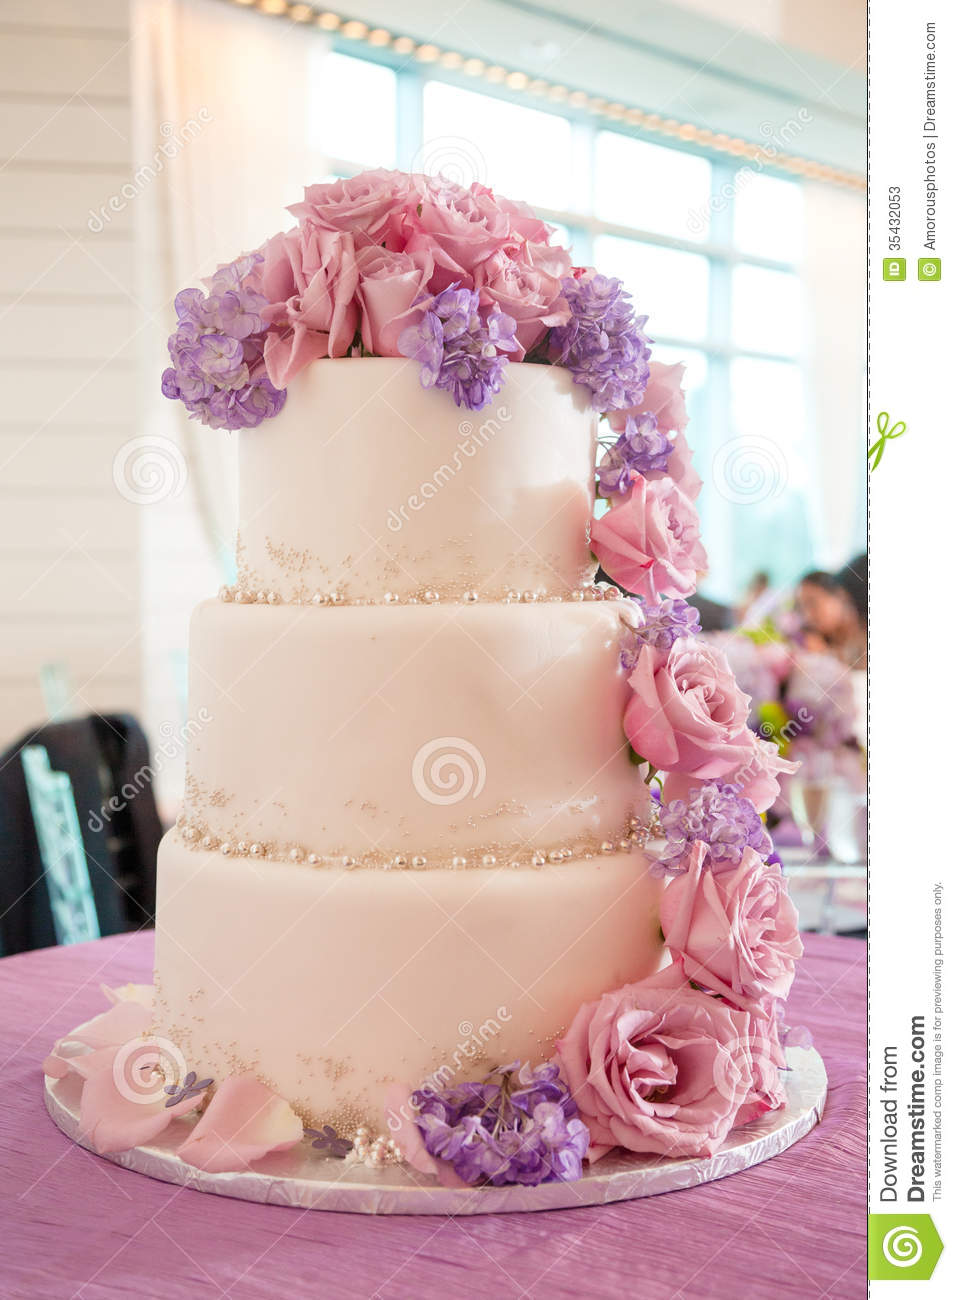 purple and pink wedding cakes wedding cake with pink and purple flowers stock image 18866